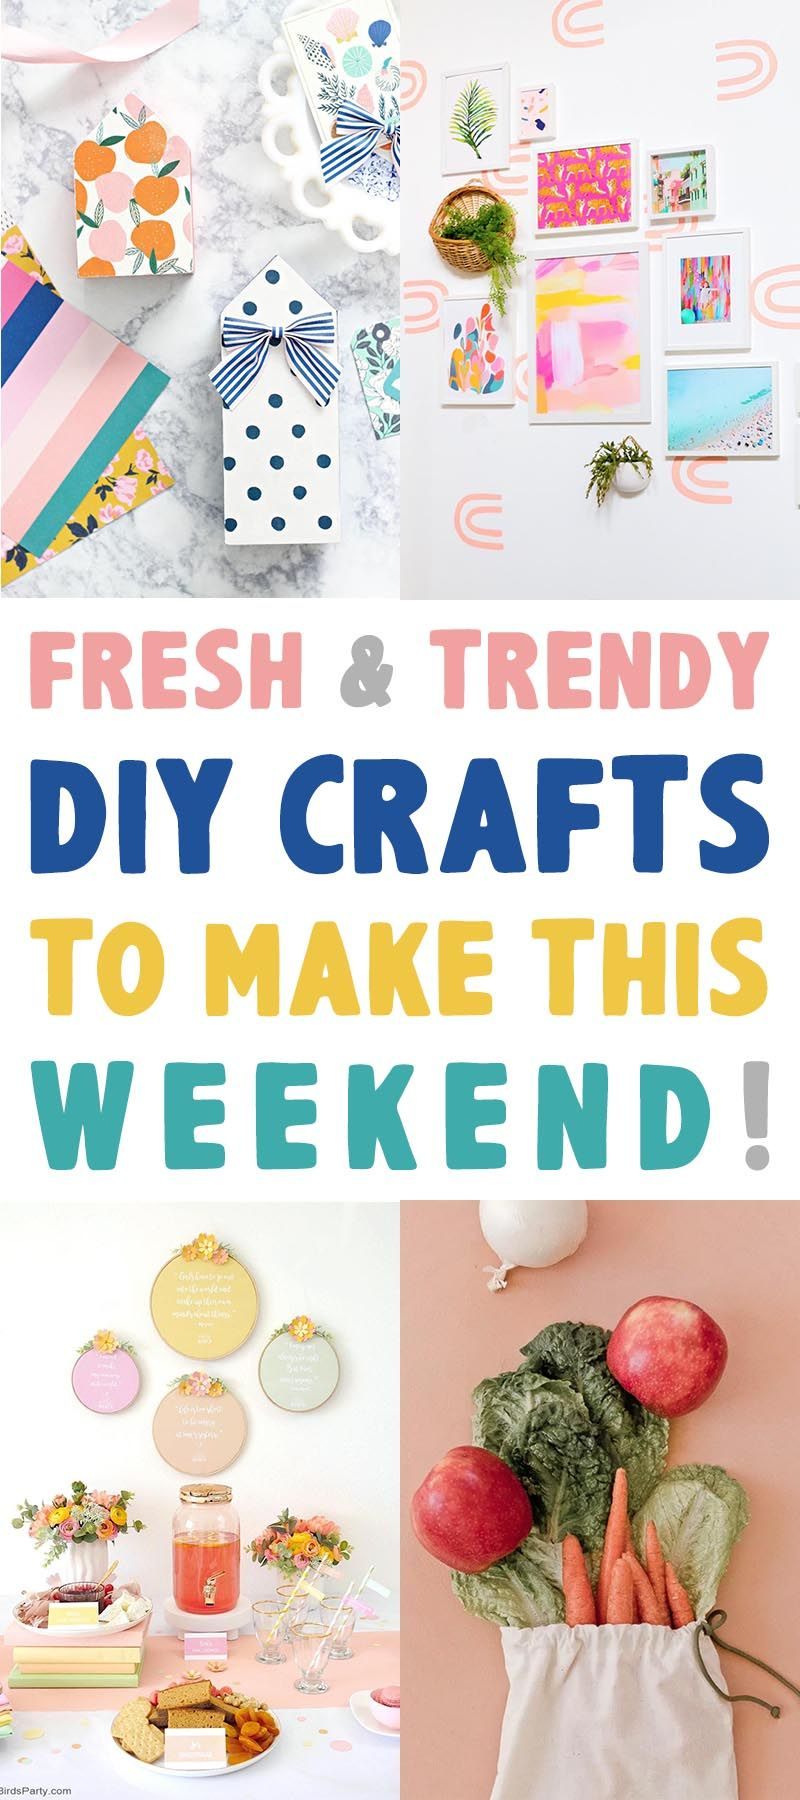 Fresh and Trendy DIY Crafts To Make This Weekend that are tons of fun!  Check out the newest... hottest... fabulous crafts out there this week!  #Crafts #DIYCrafts #FreshCrafts #NewCrafts #TrendyDIYCrafts